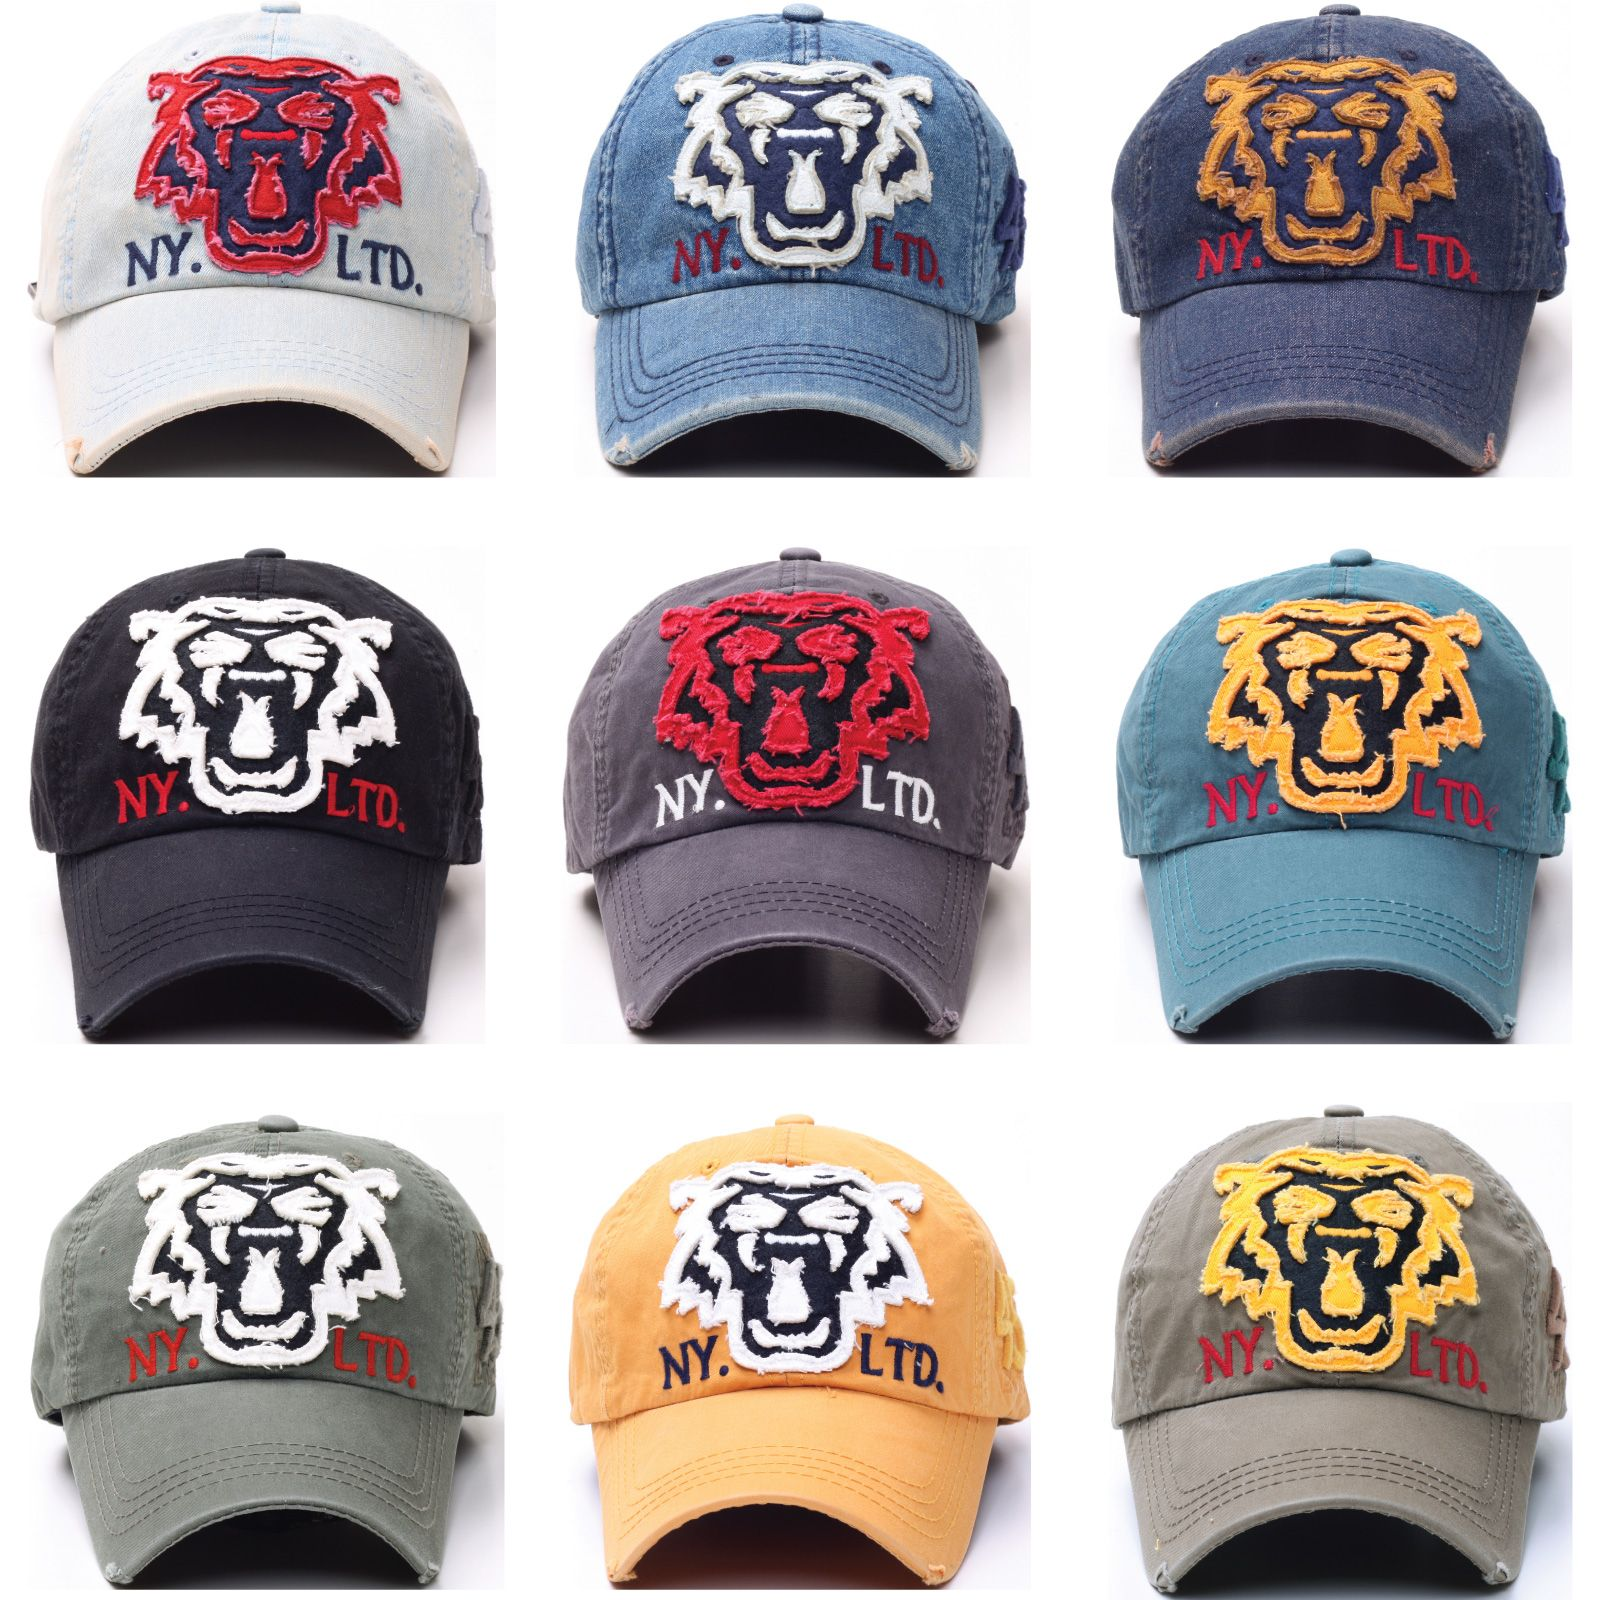 10686146bac0e B50 Vintage Tiger Tattoo Emblem Punk Style Flat Ball Cap Baseball Hat  Truckers